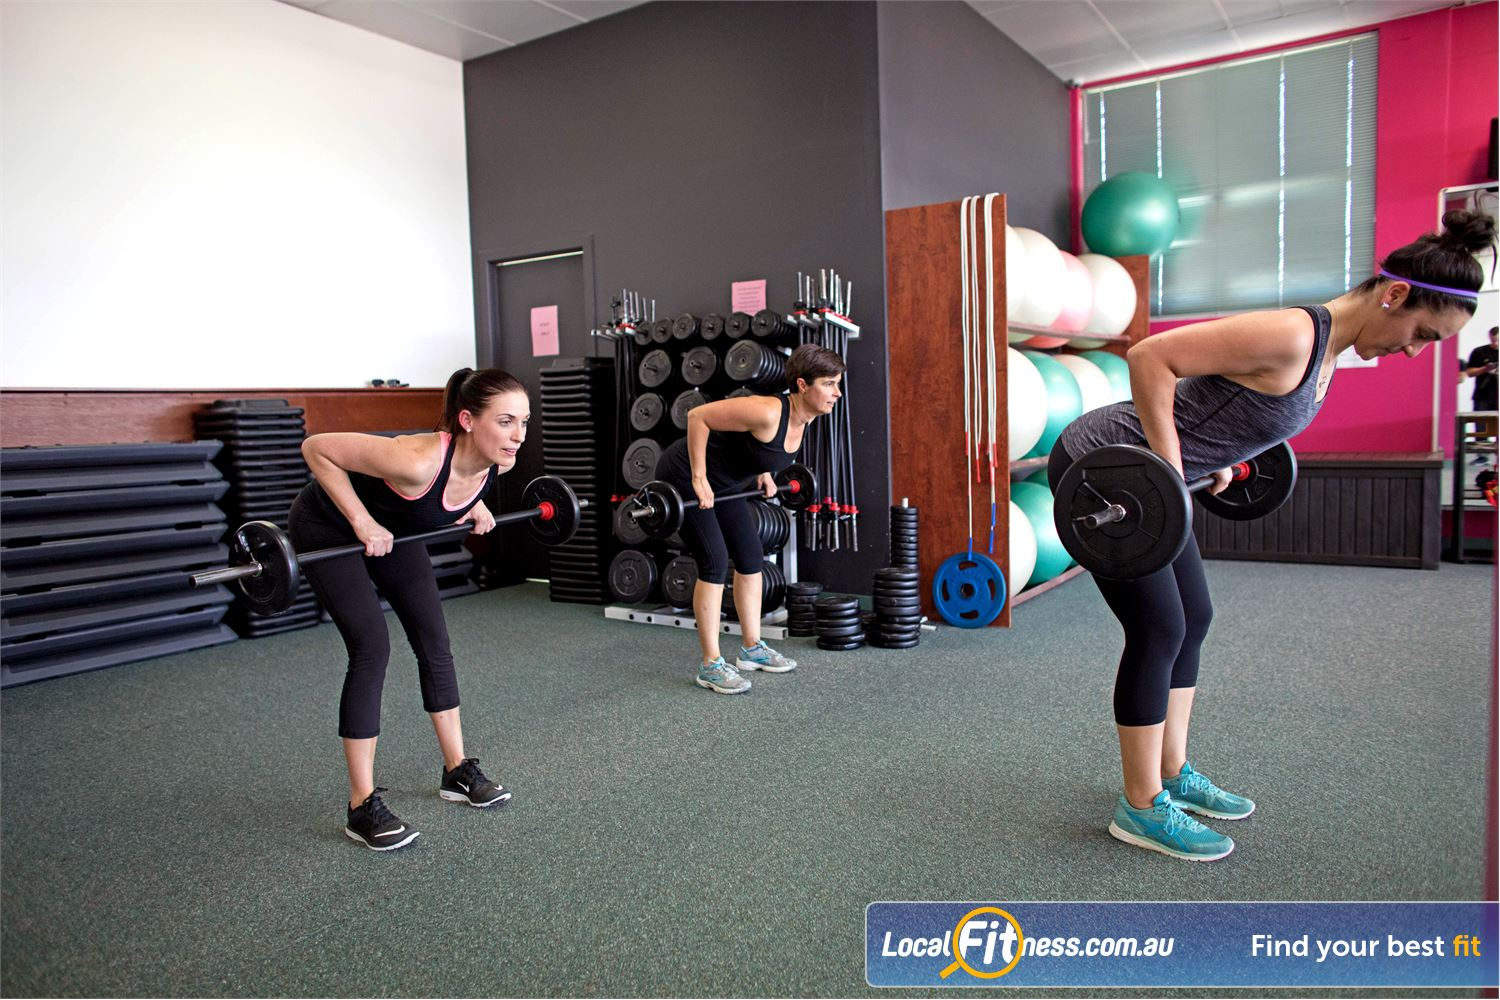 Fernwood Fitness Near Stafford Heights Over 30 classes per week inc. HIIT, Les Mills and more.